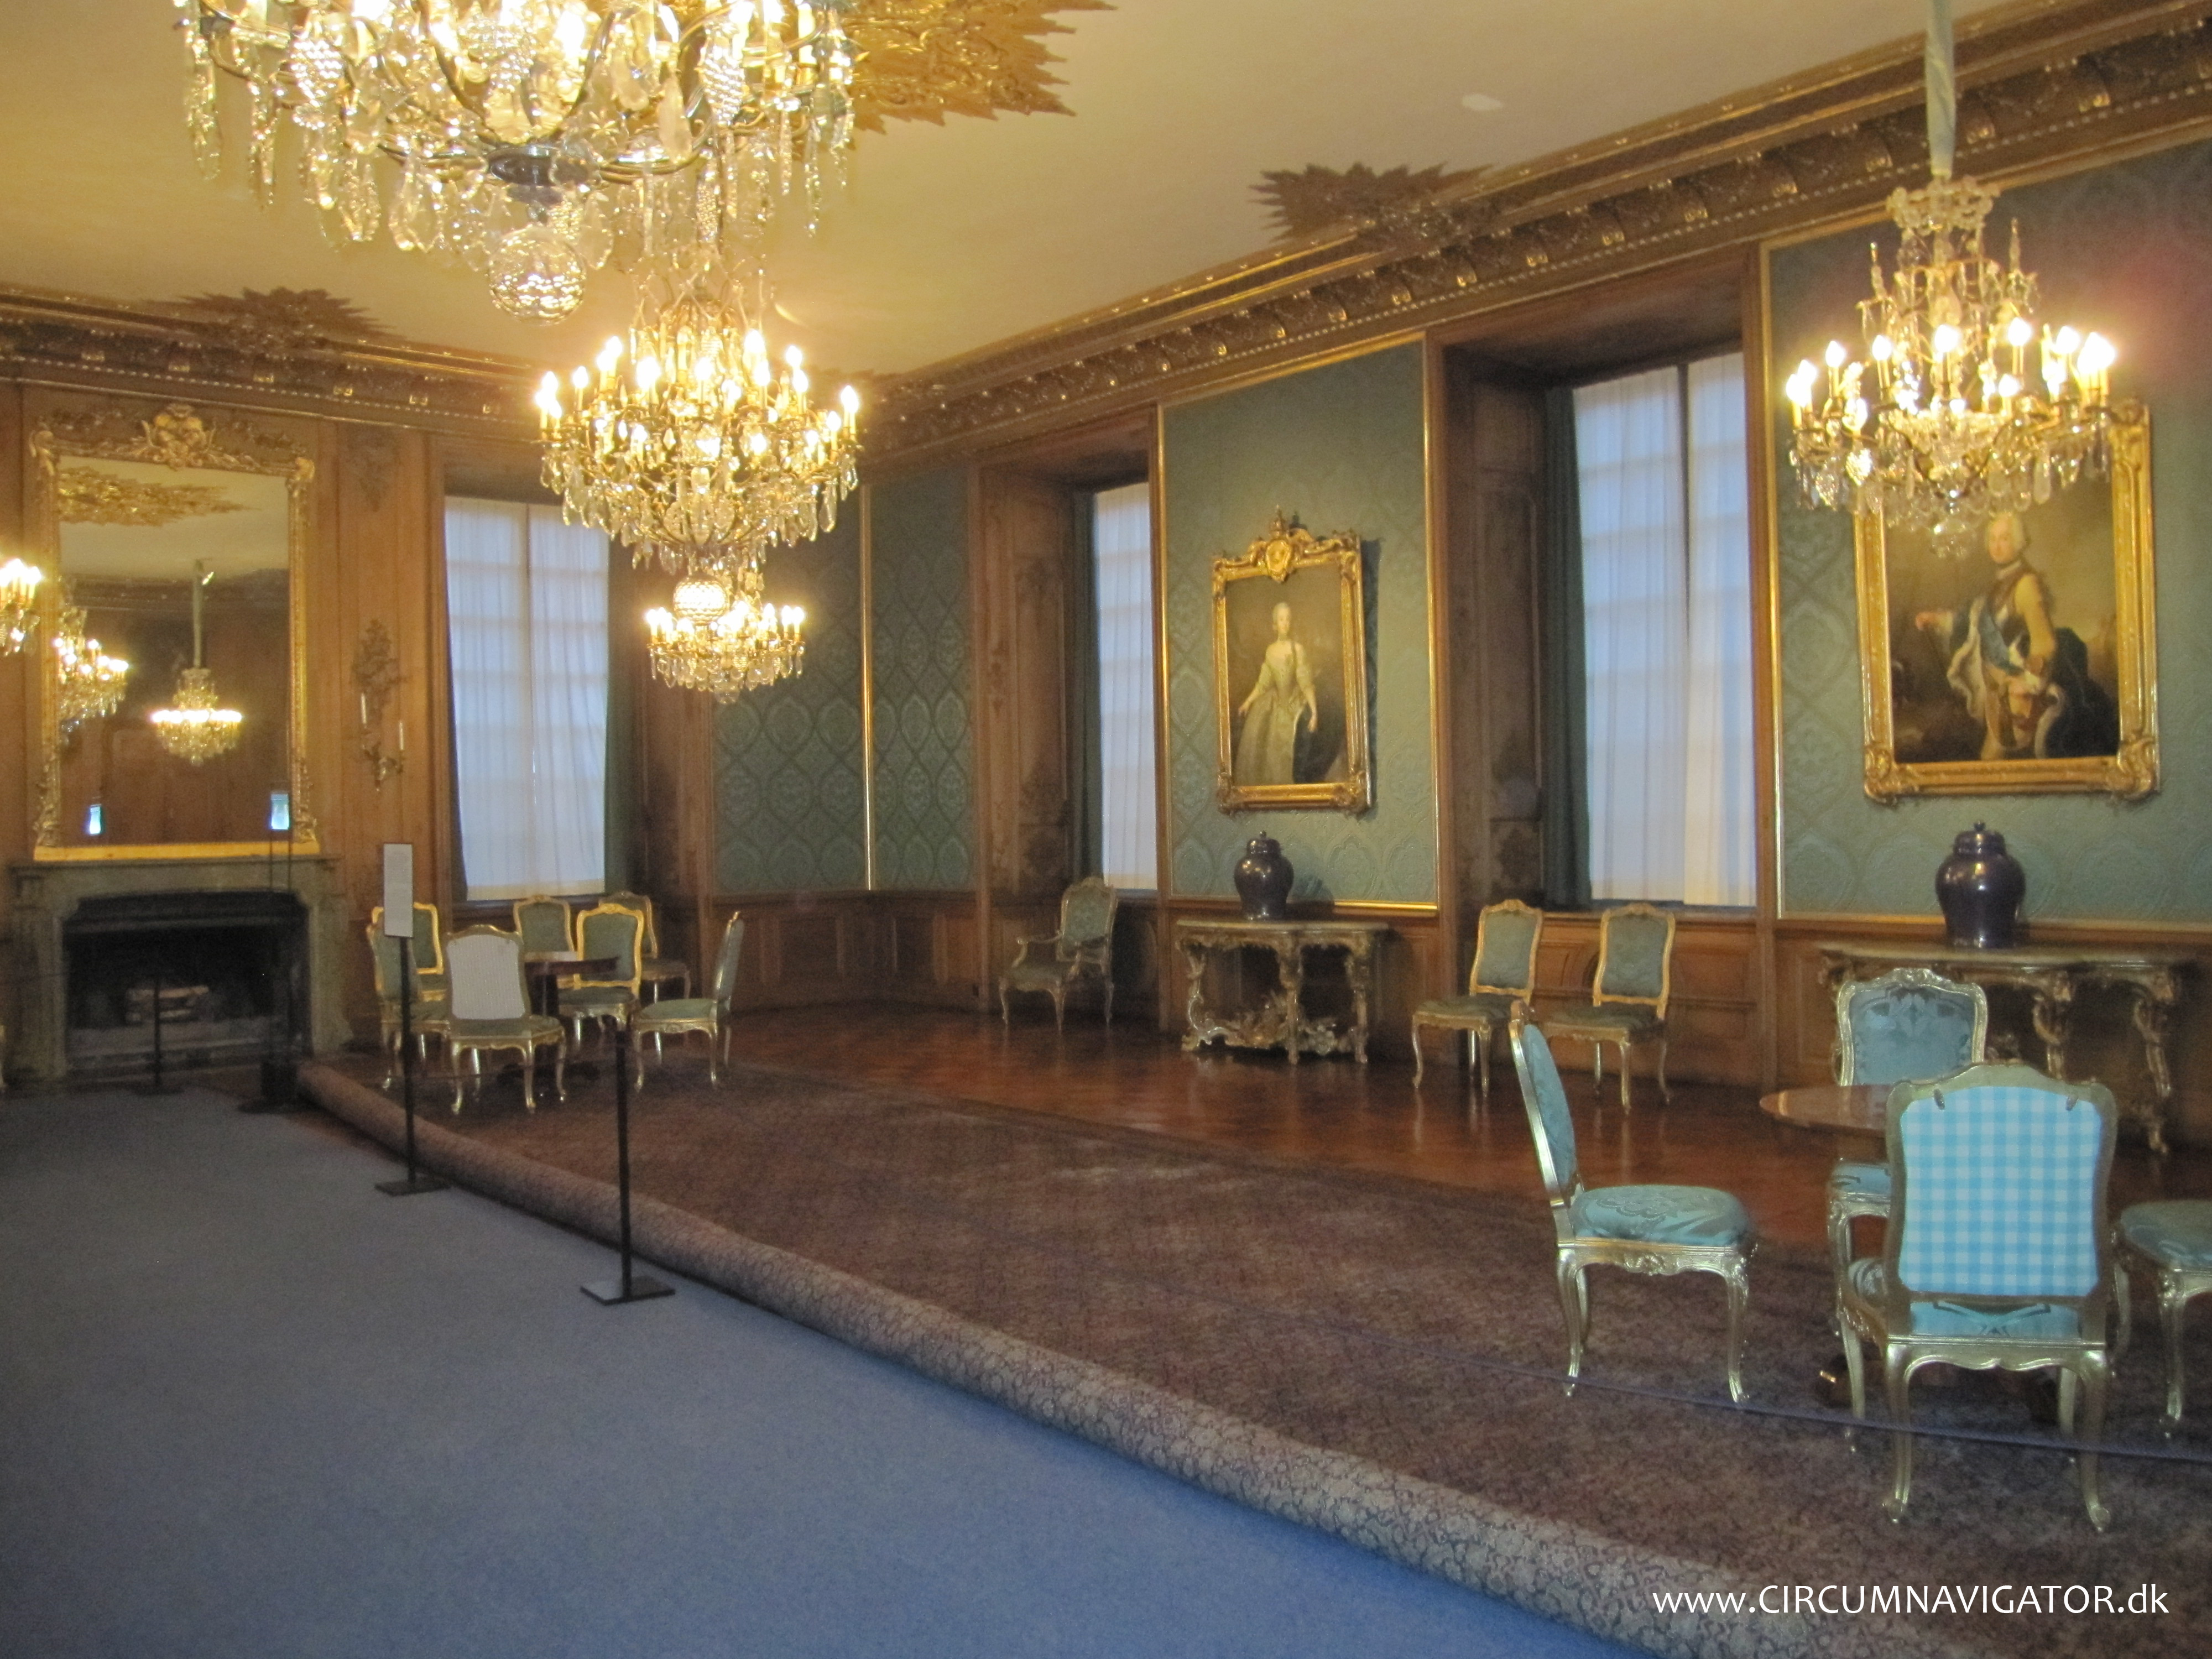 The royal palace stockholm chandeliers